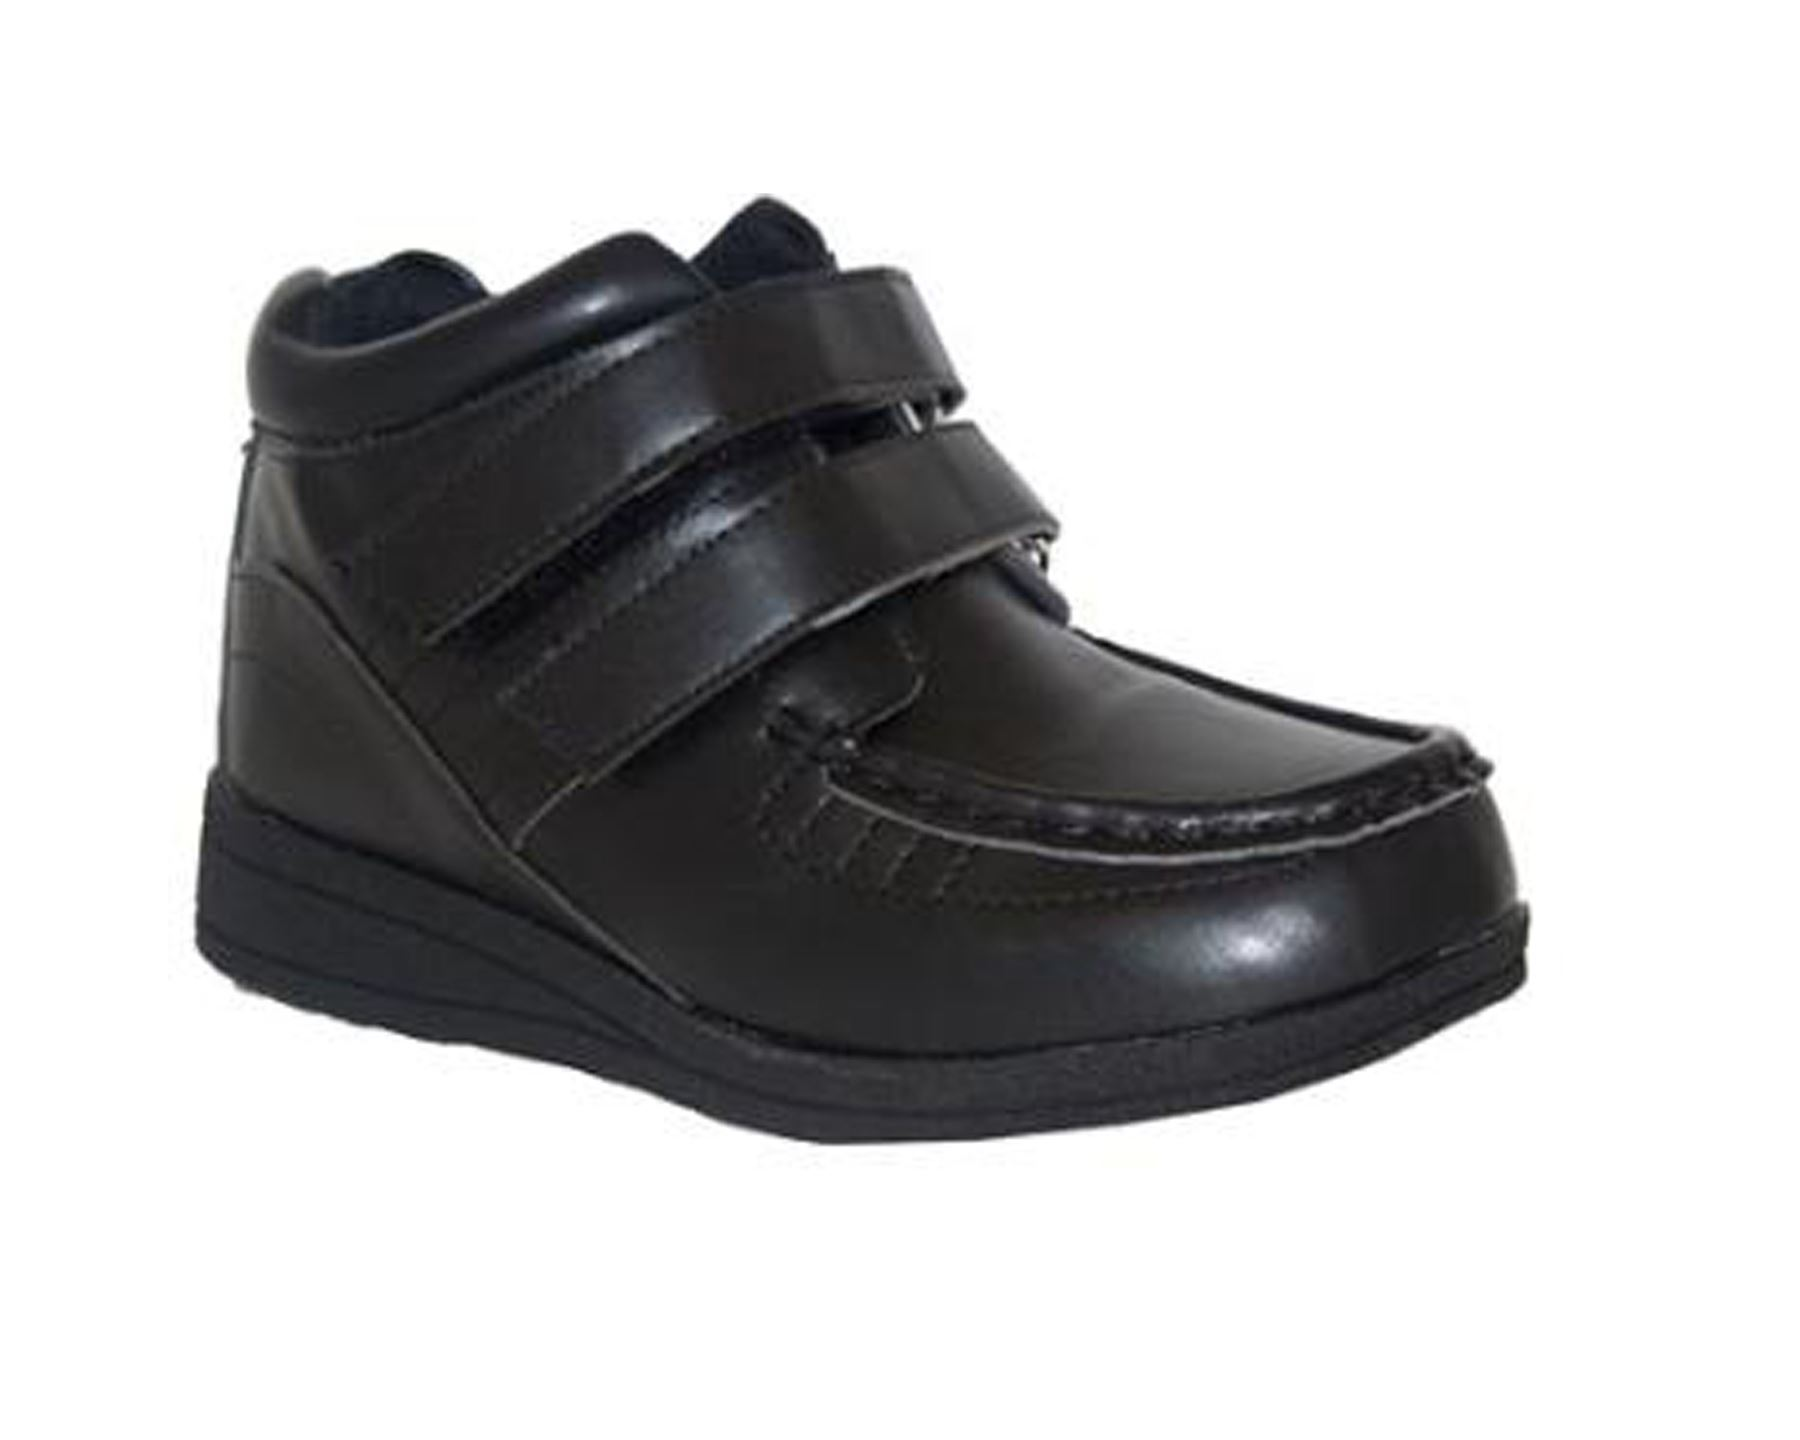 Velcro Strap Shoes For Boys